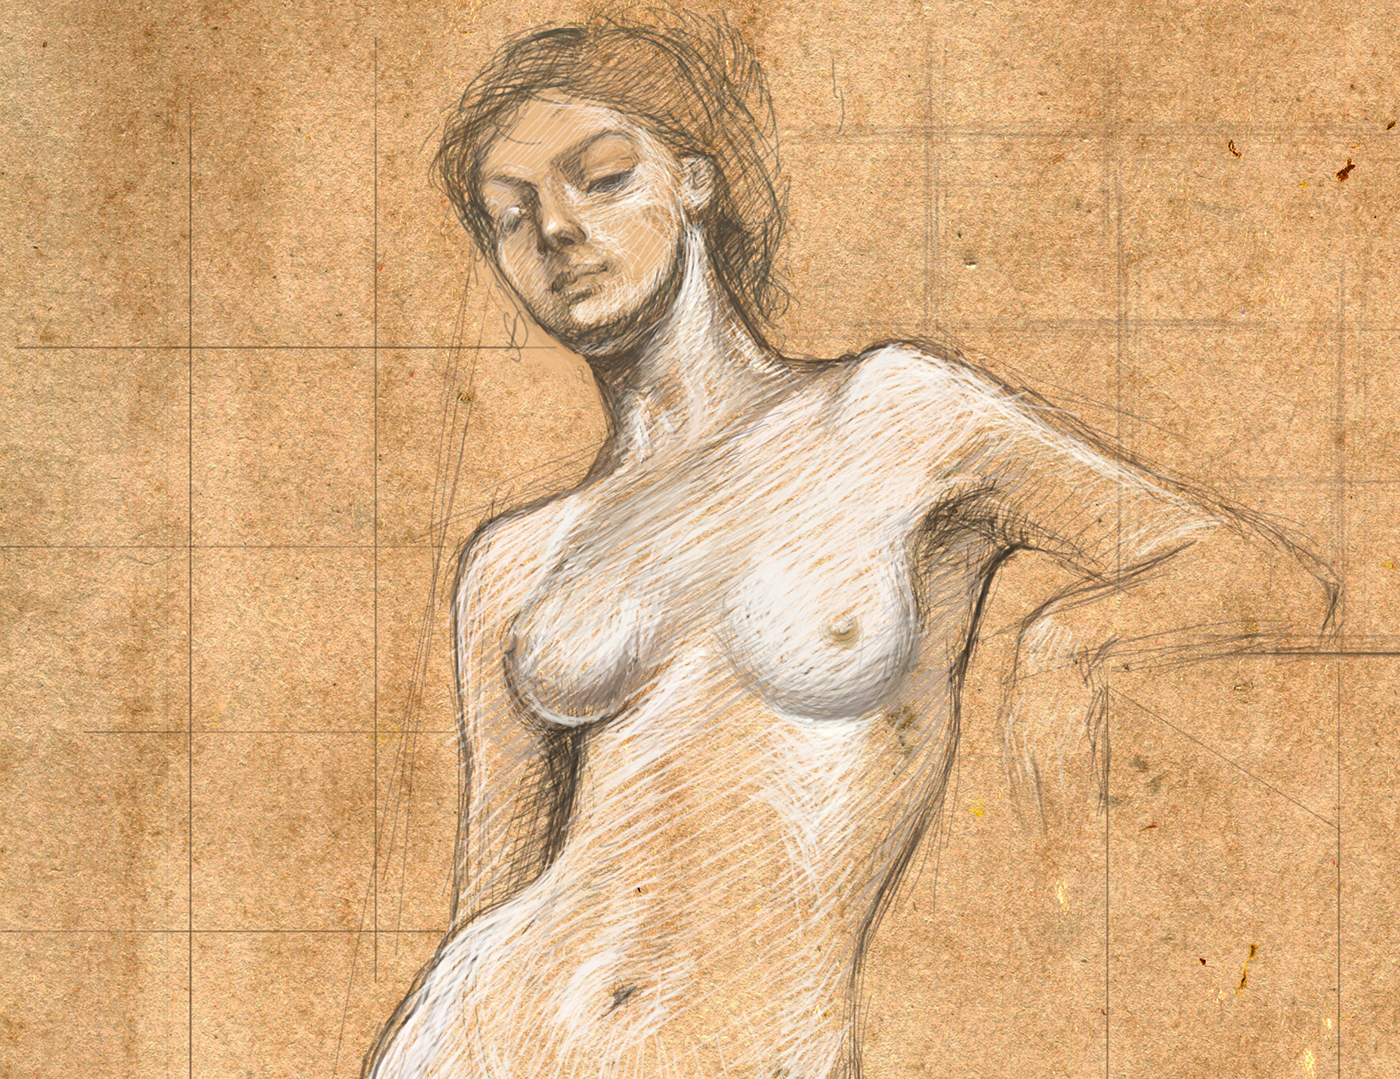 Lucian freud's nude portraits reveal a painter's obsession with skin